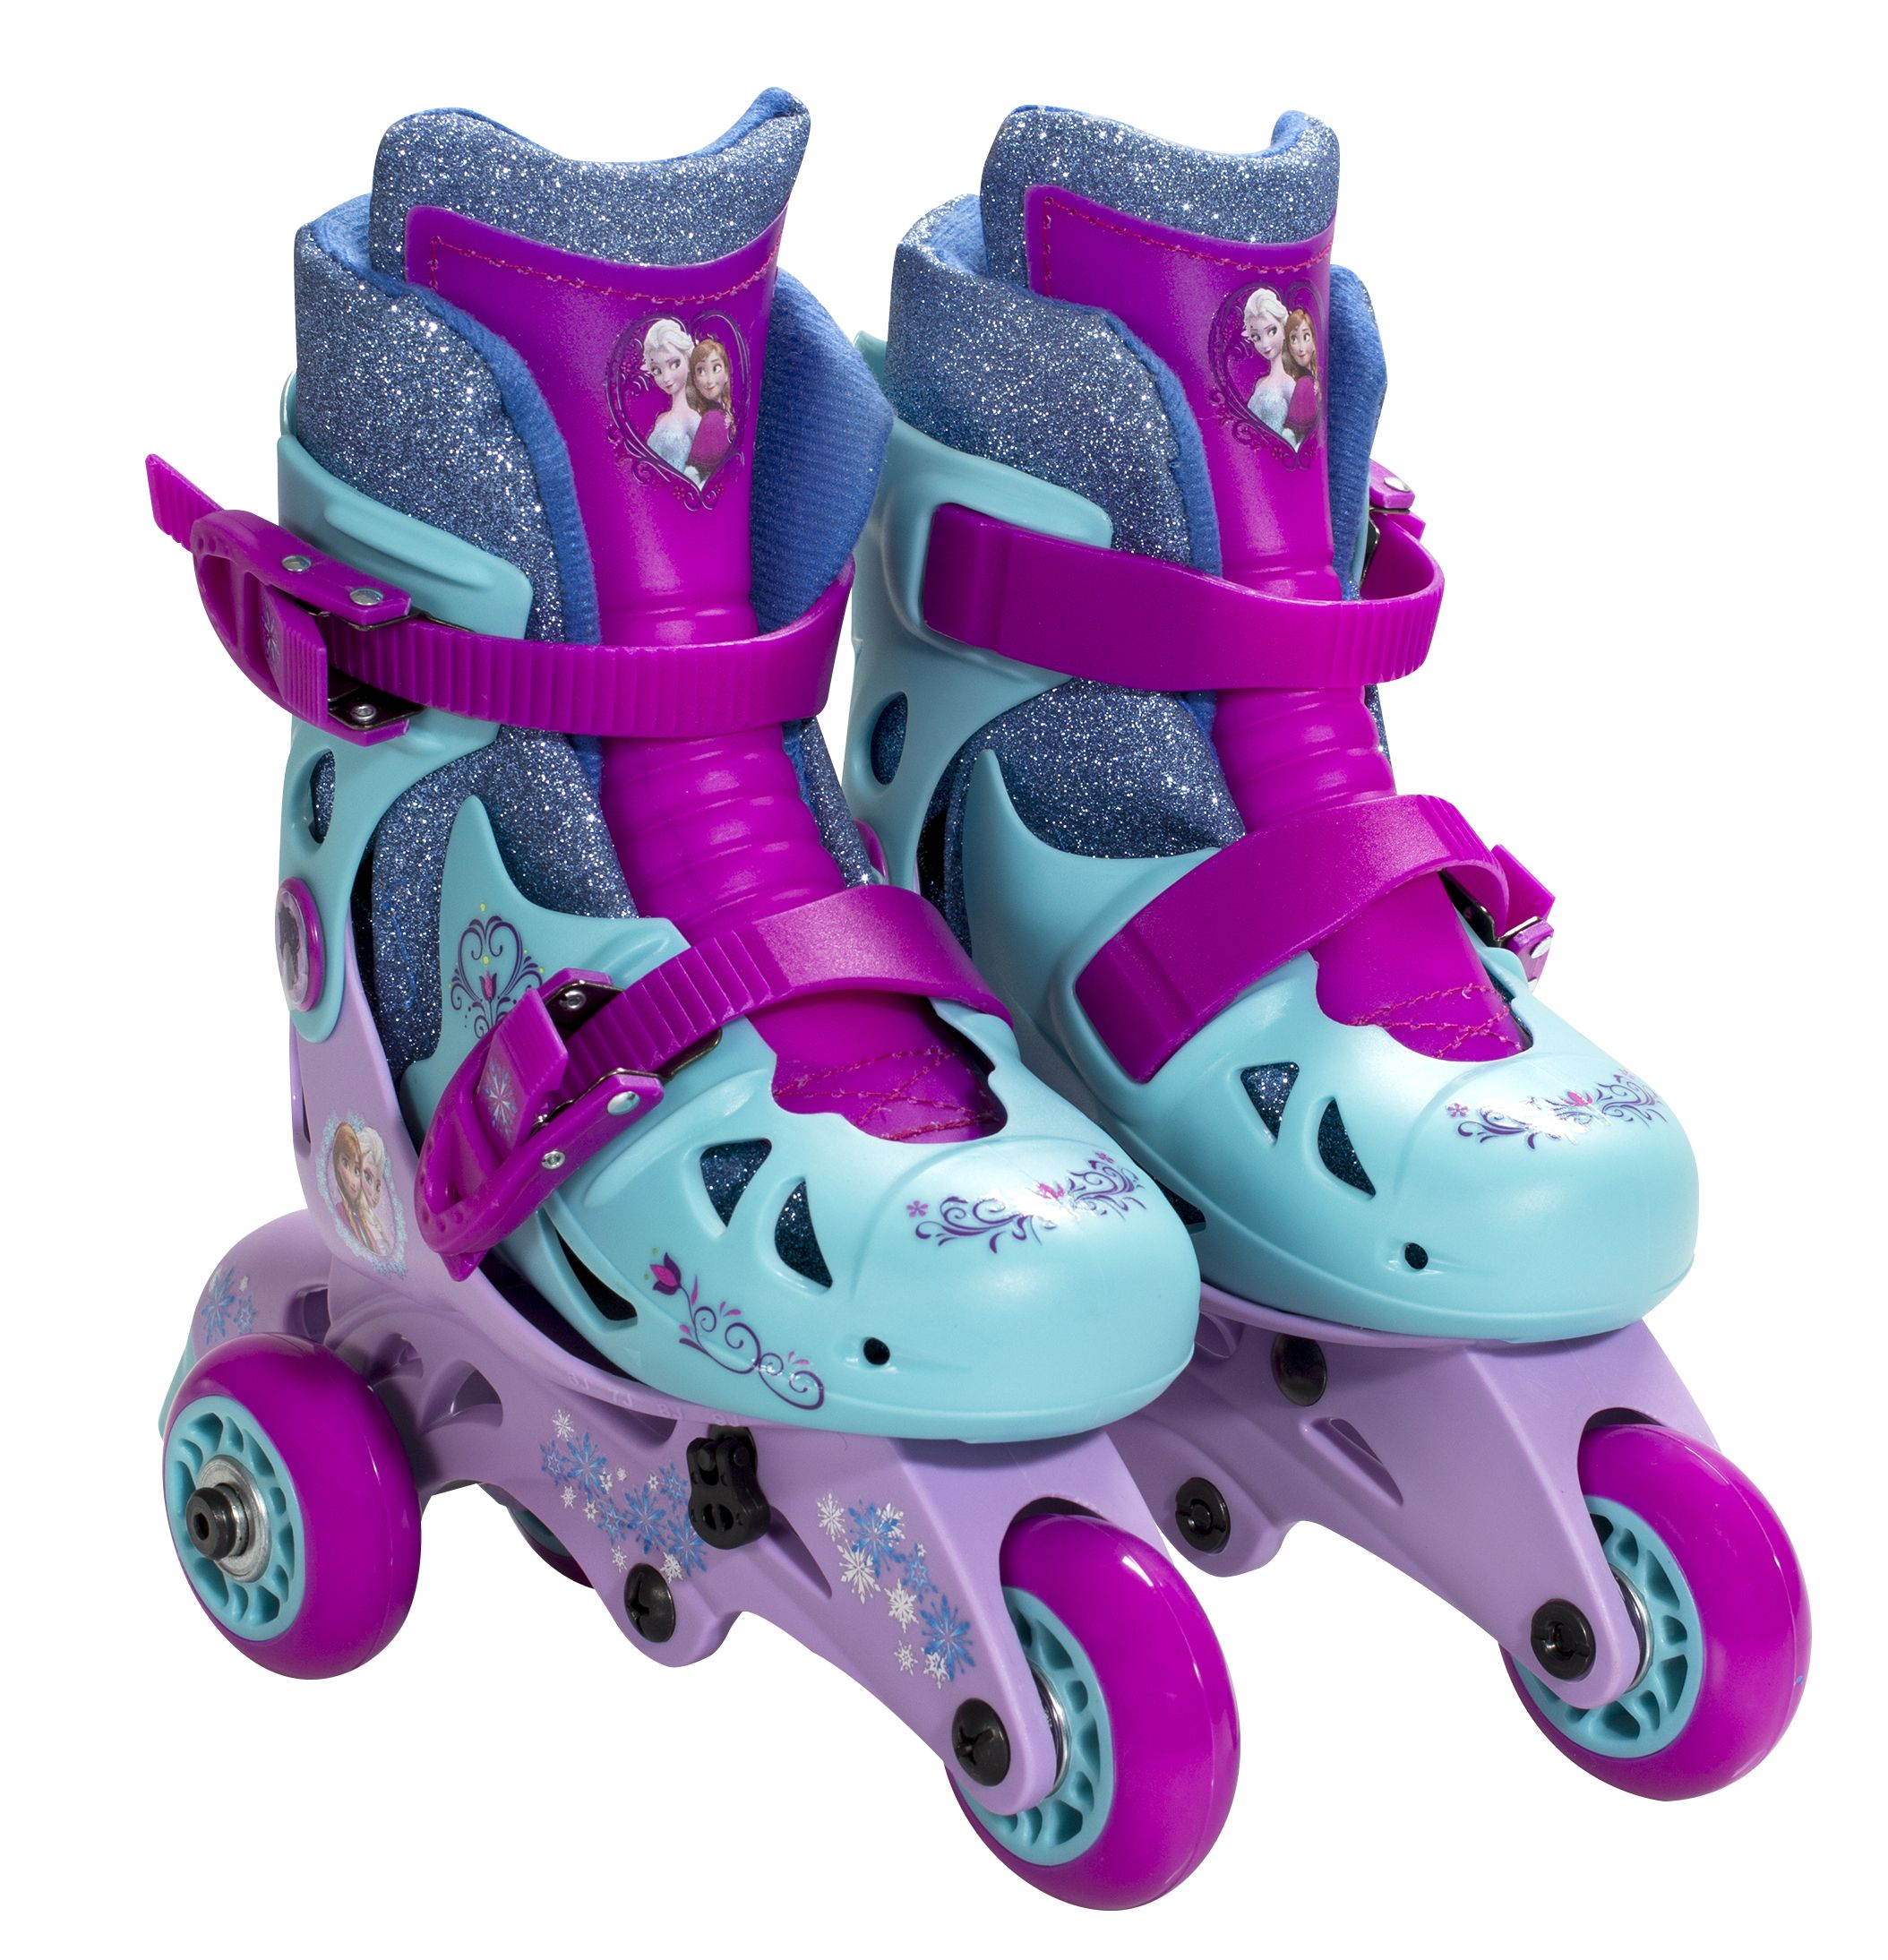 Rollerblades And Toys : Convertible glitter in skates available at